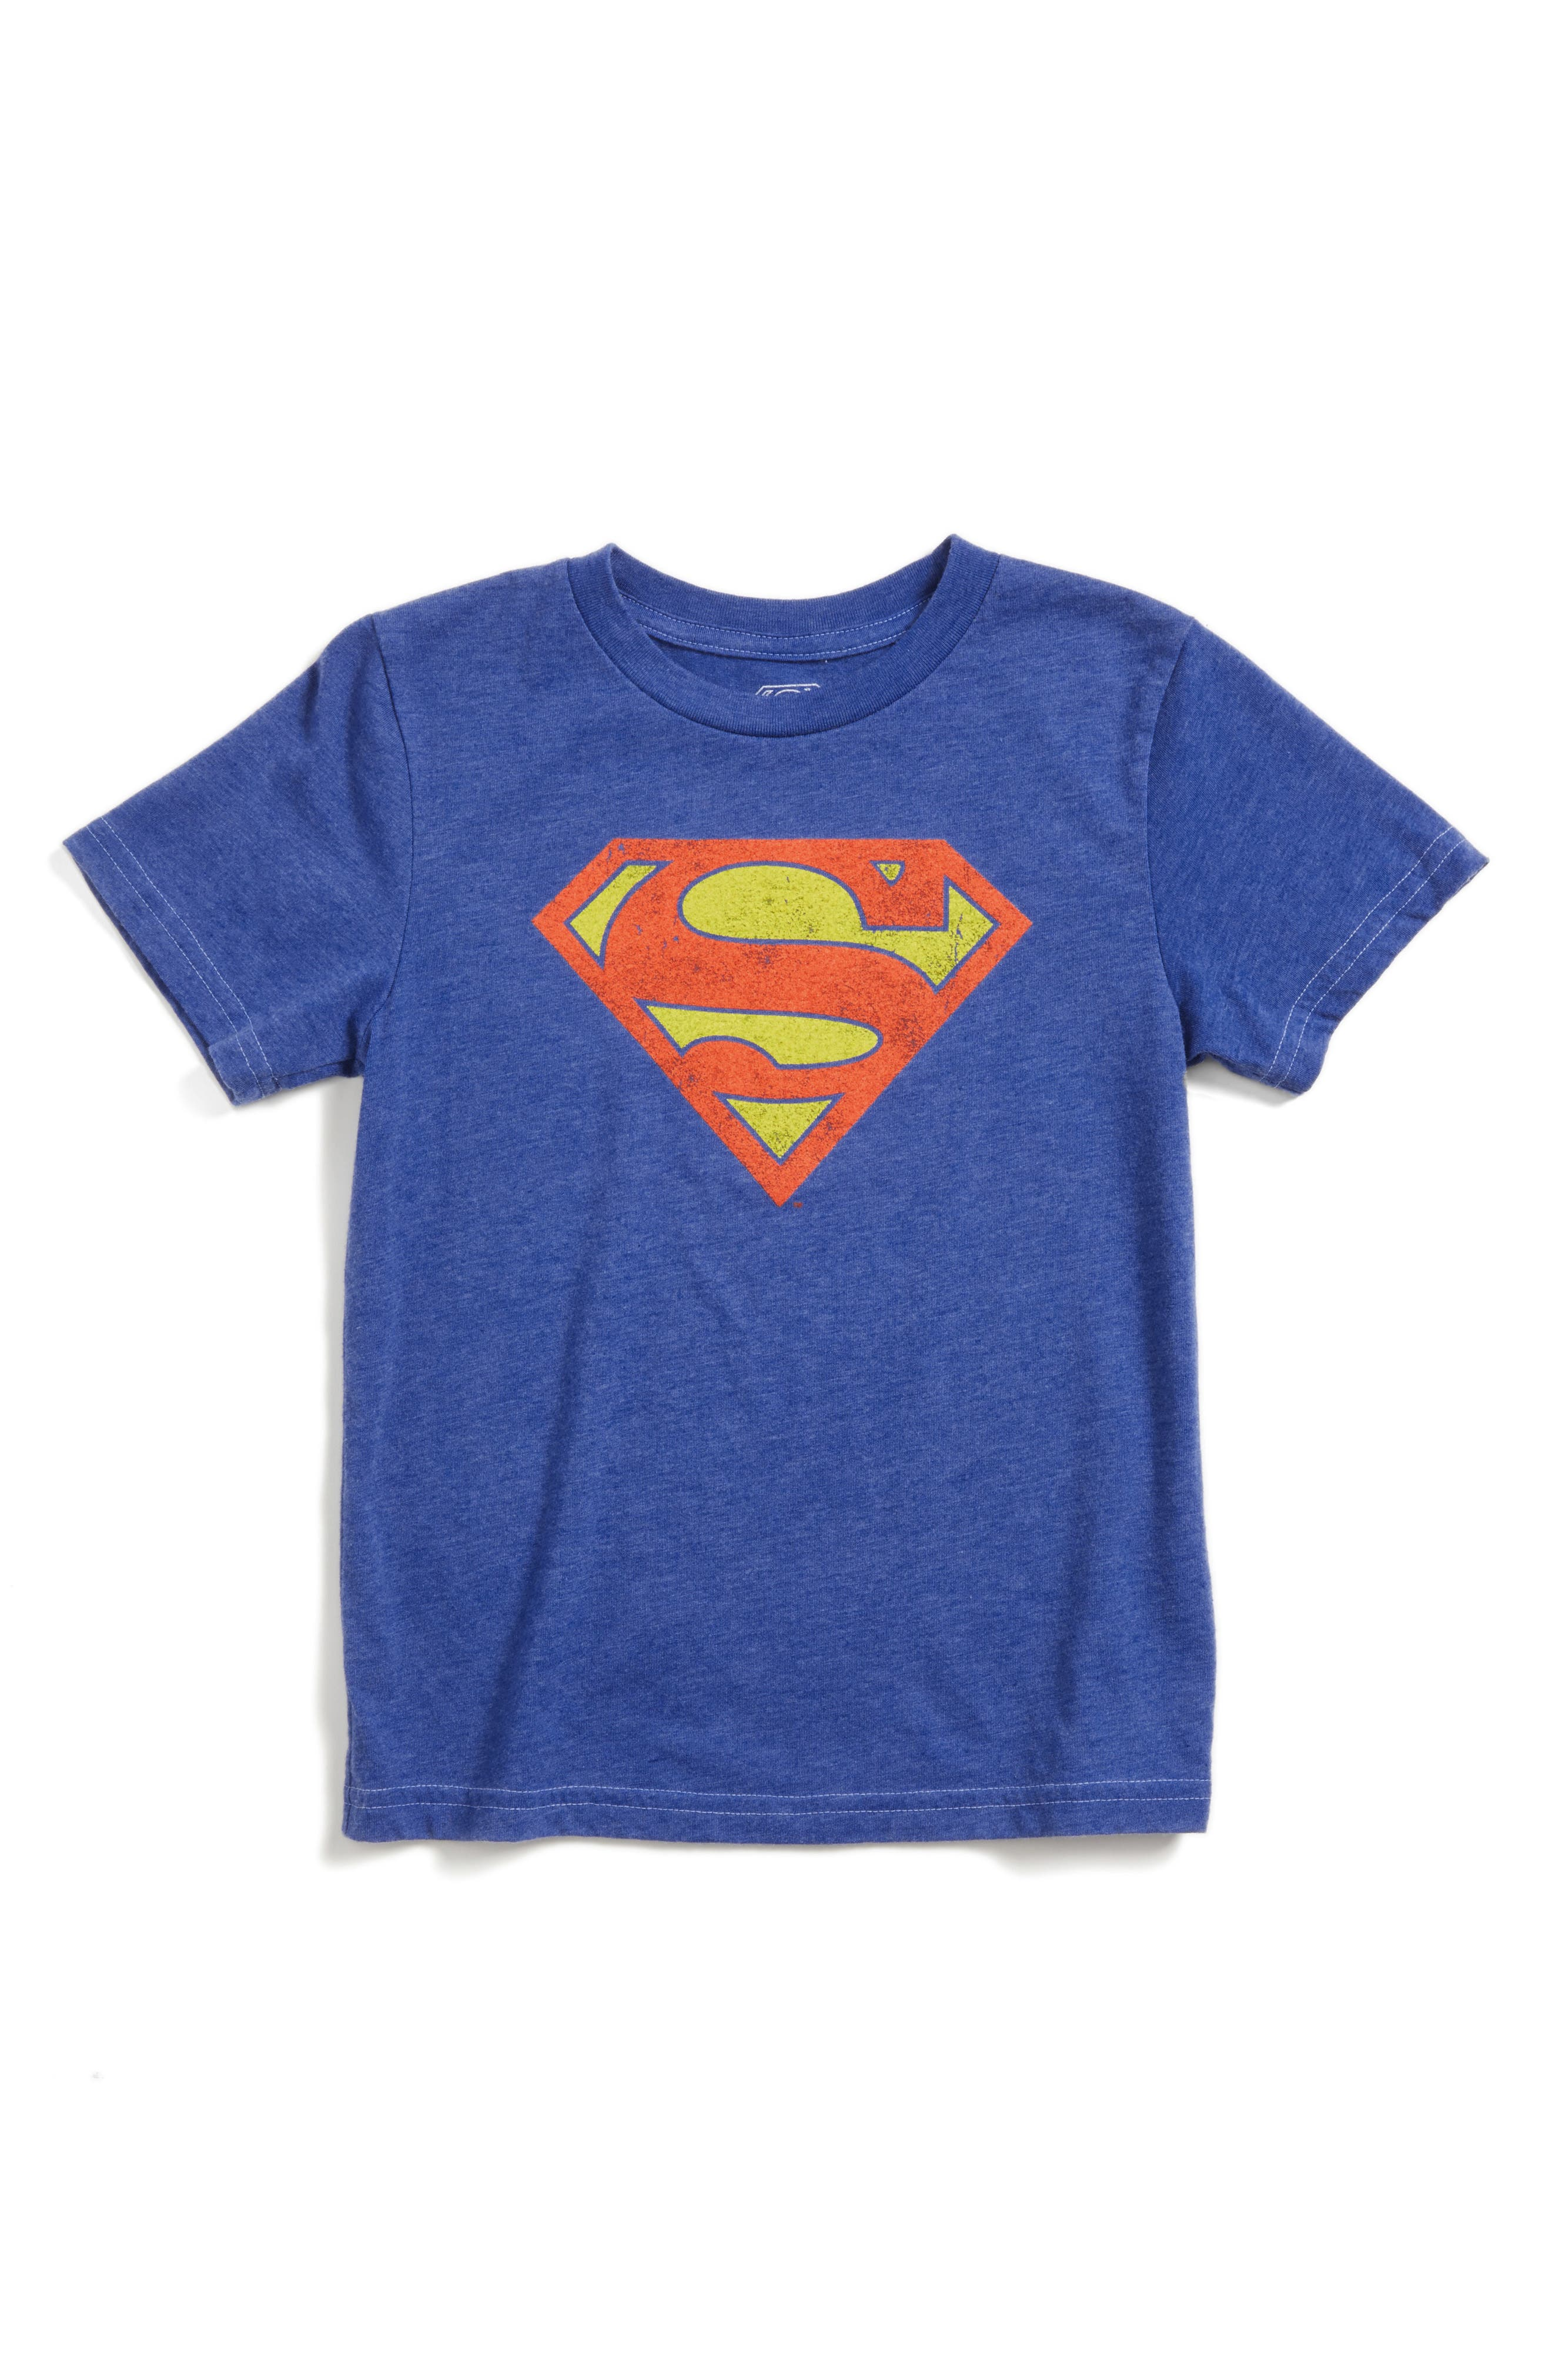 Jem Superman Graphic T-Shirt (Toddler Boys, Little Boys & Big Boys)